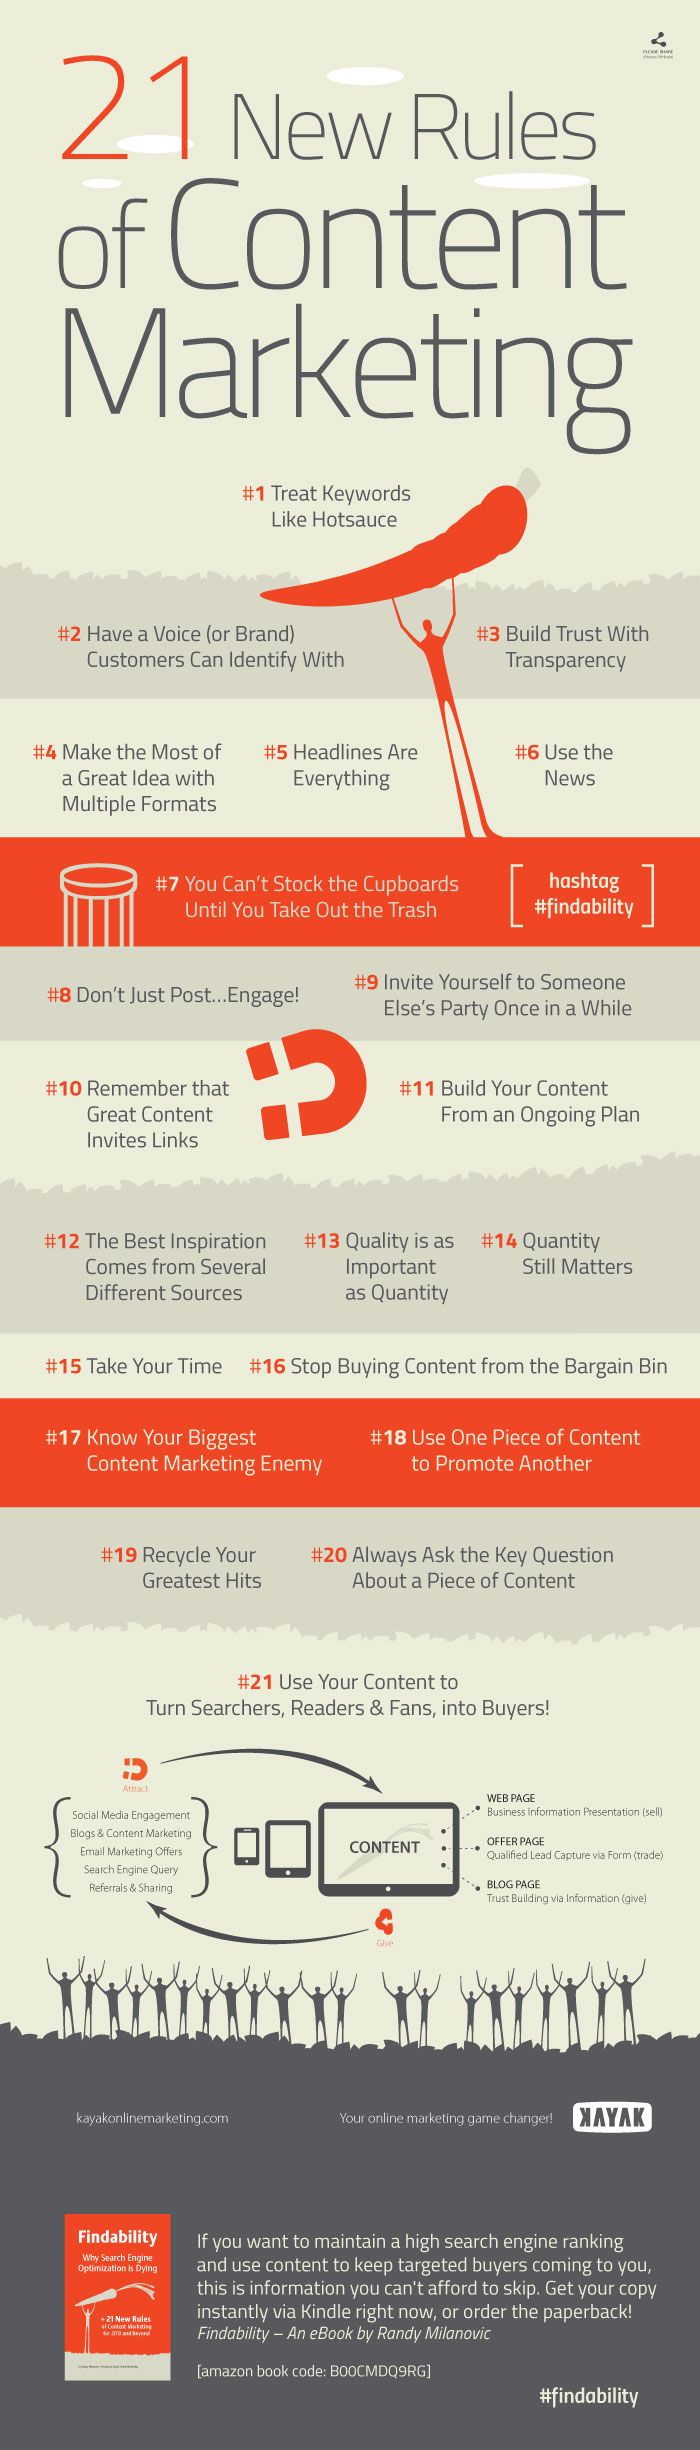 21 New #Content #Marketing Rules #ContentCuration